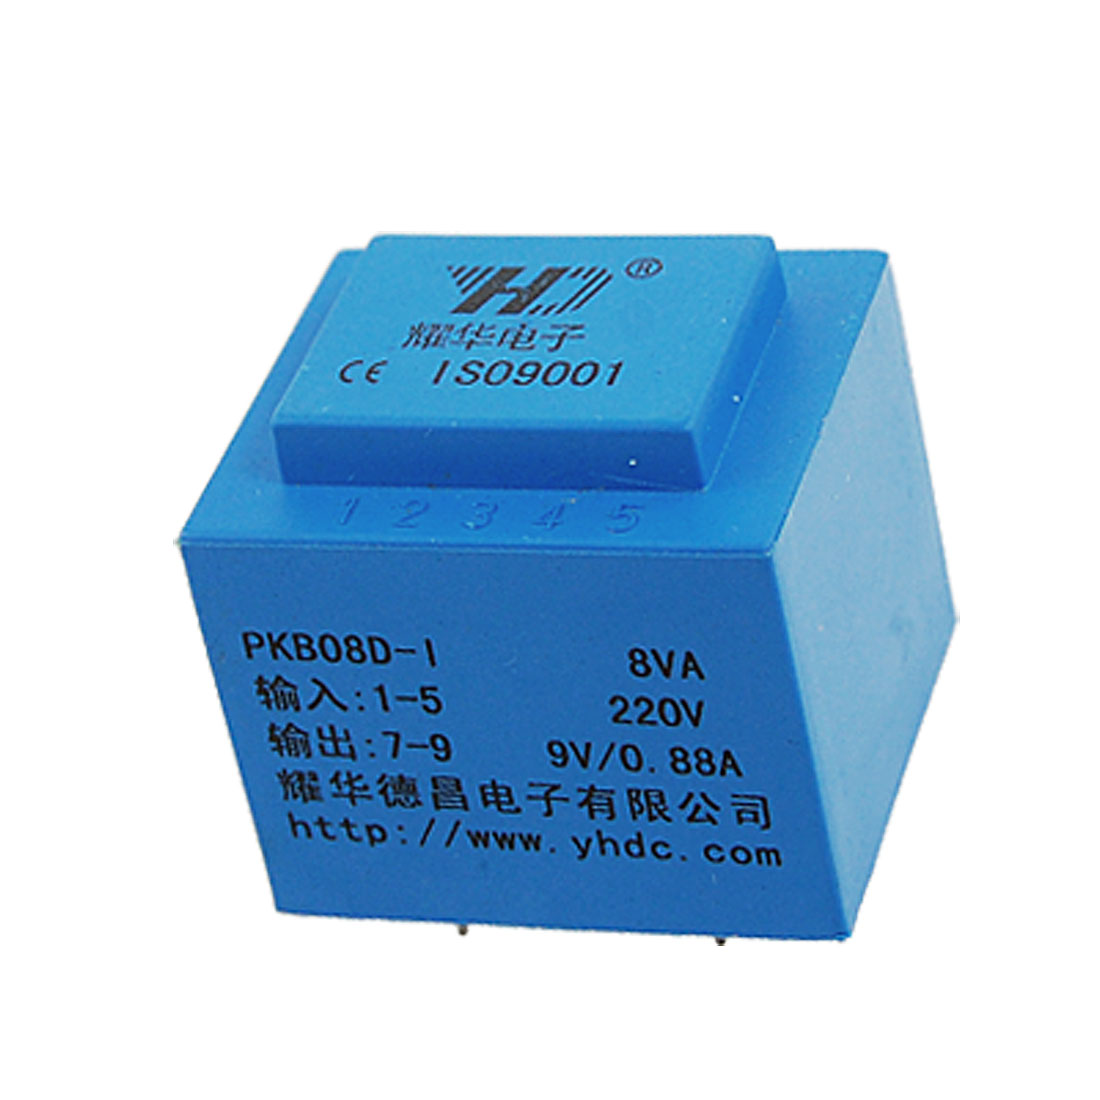 Epoxy Resin Sealed Encapsulated Power Transformer 8VA